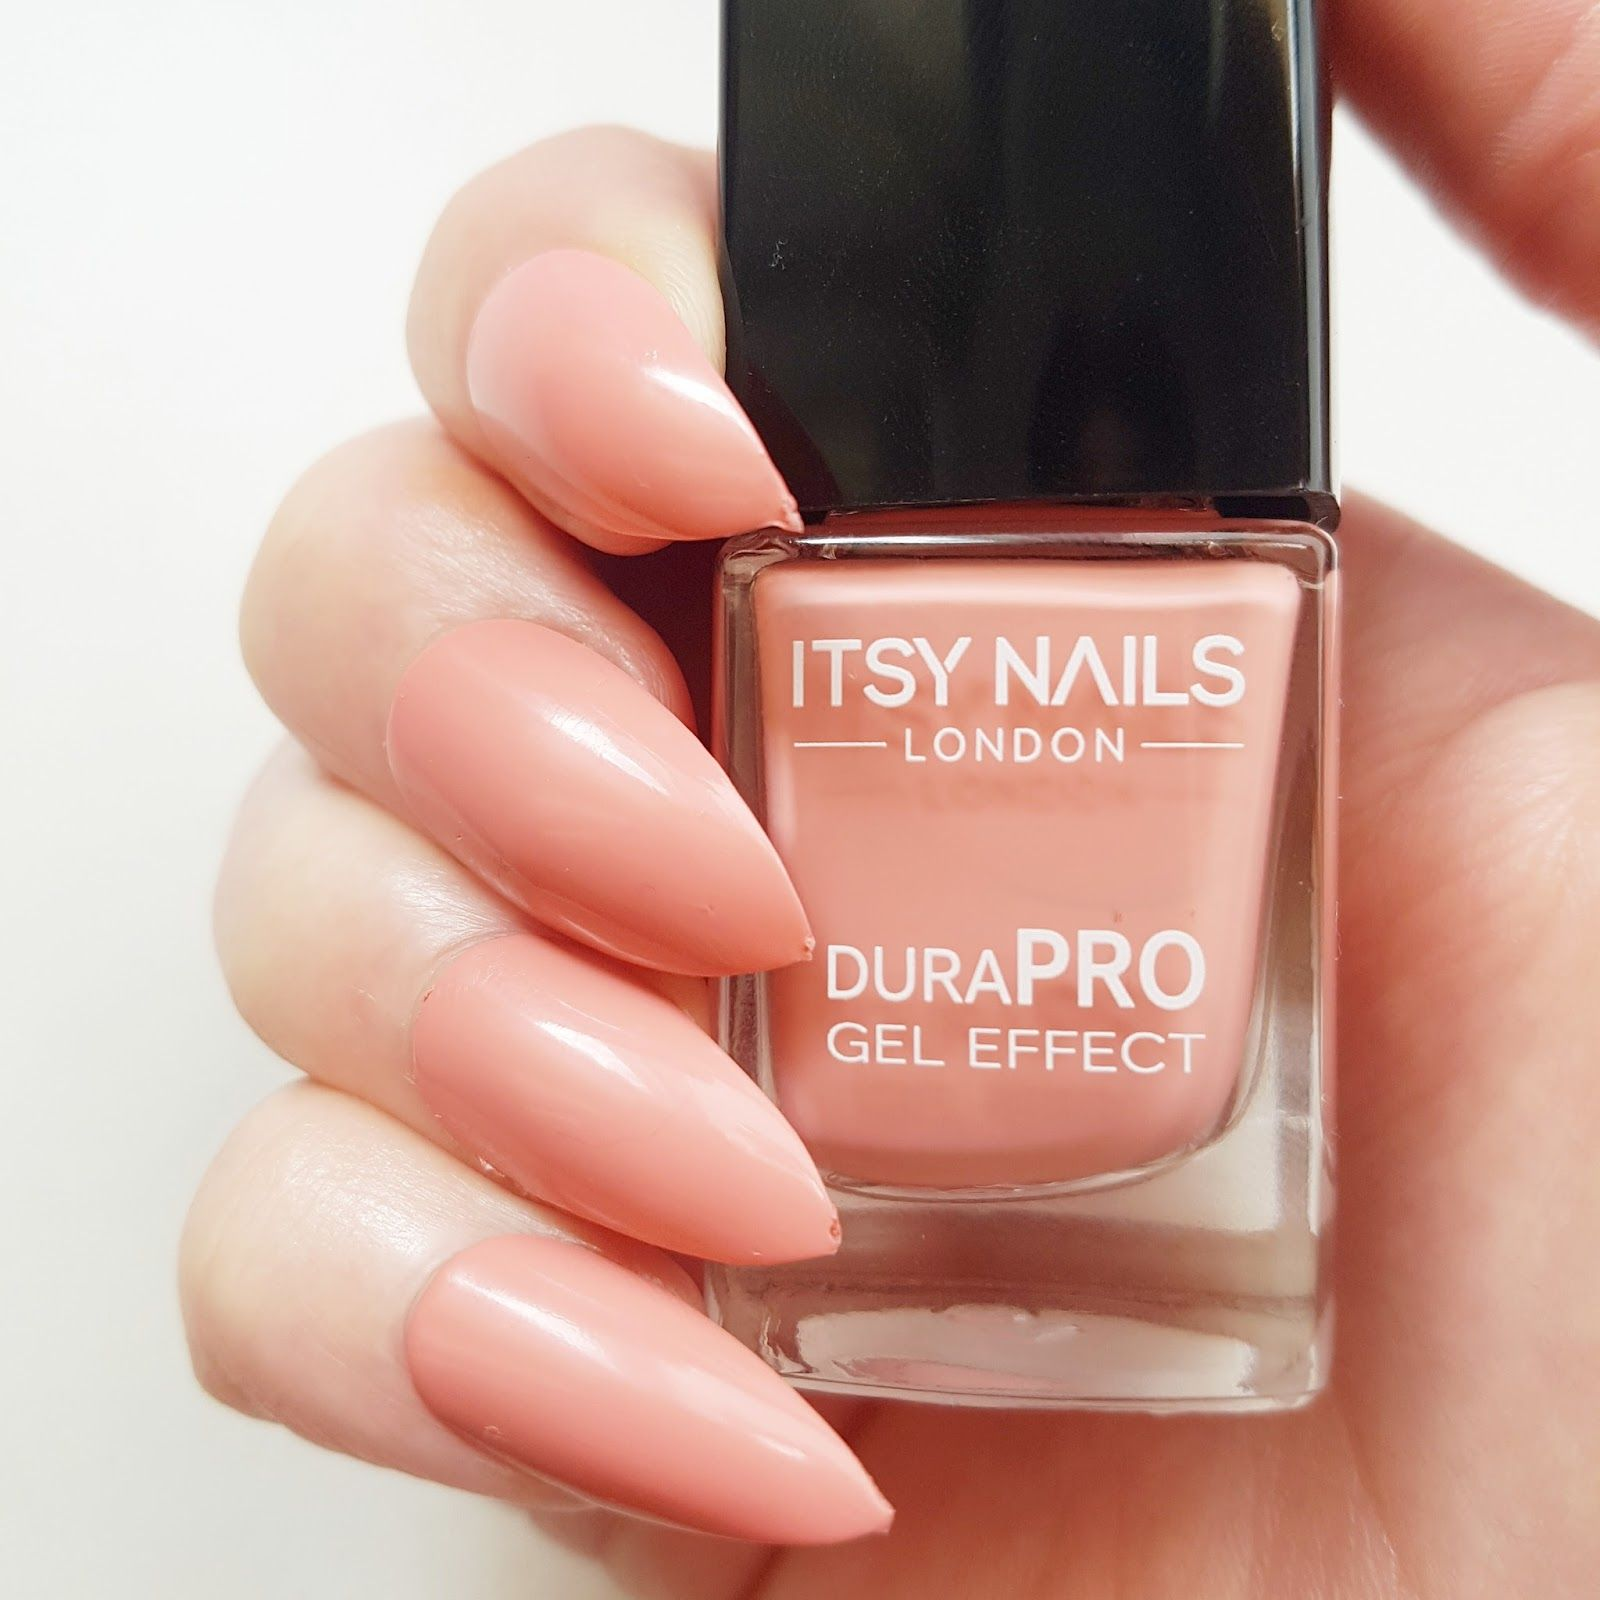 ITSY NAILS LONDON Review | Nothing more, My nails and Nails